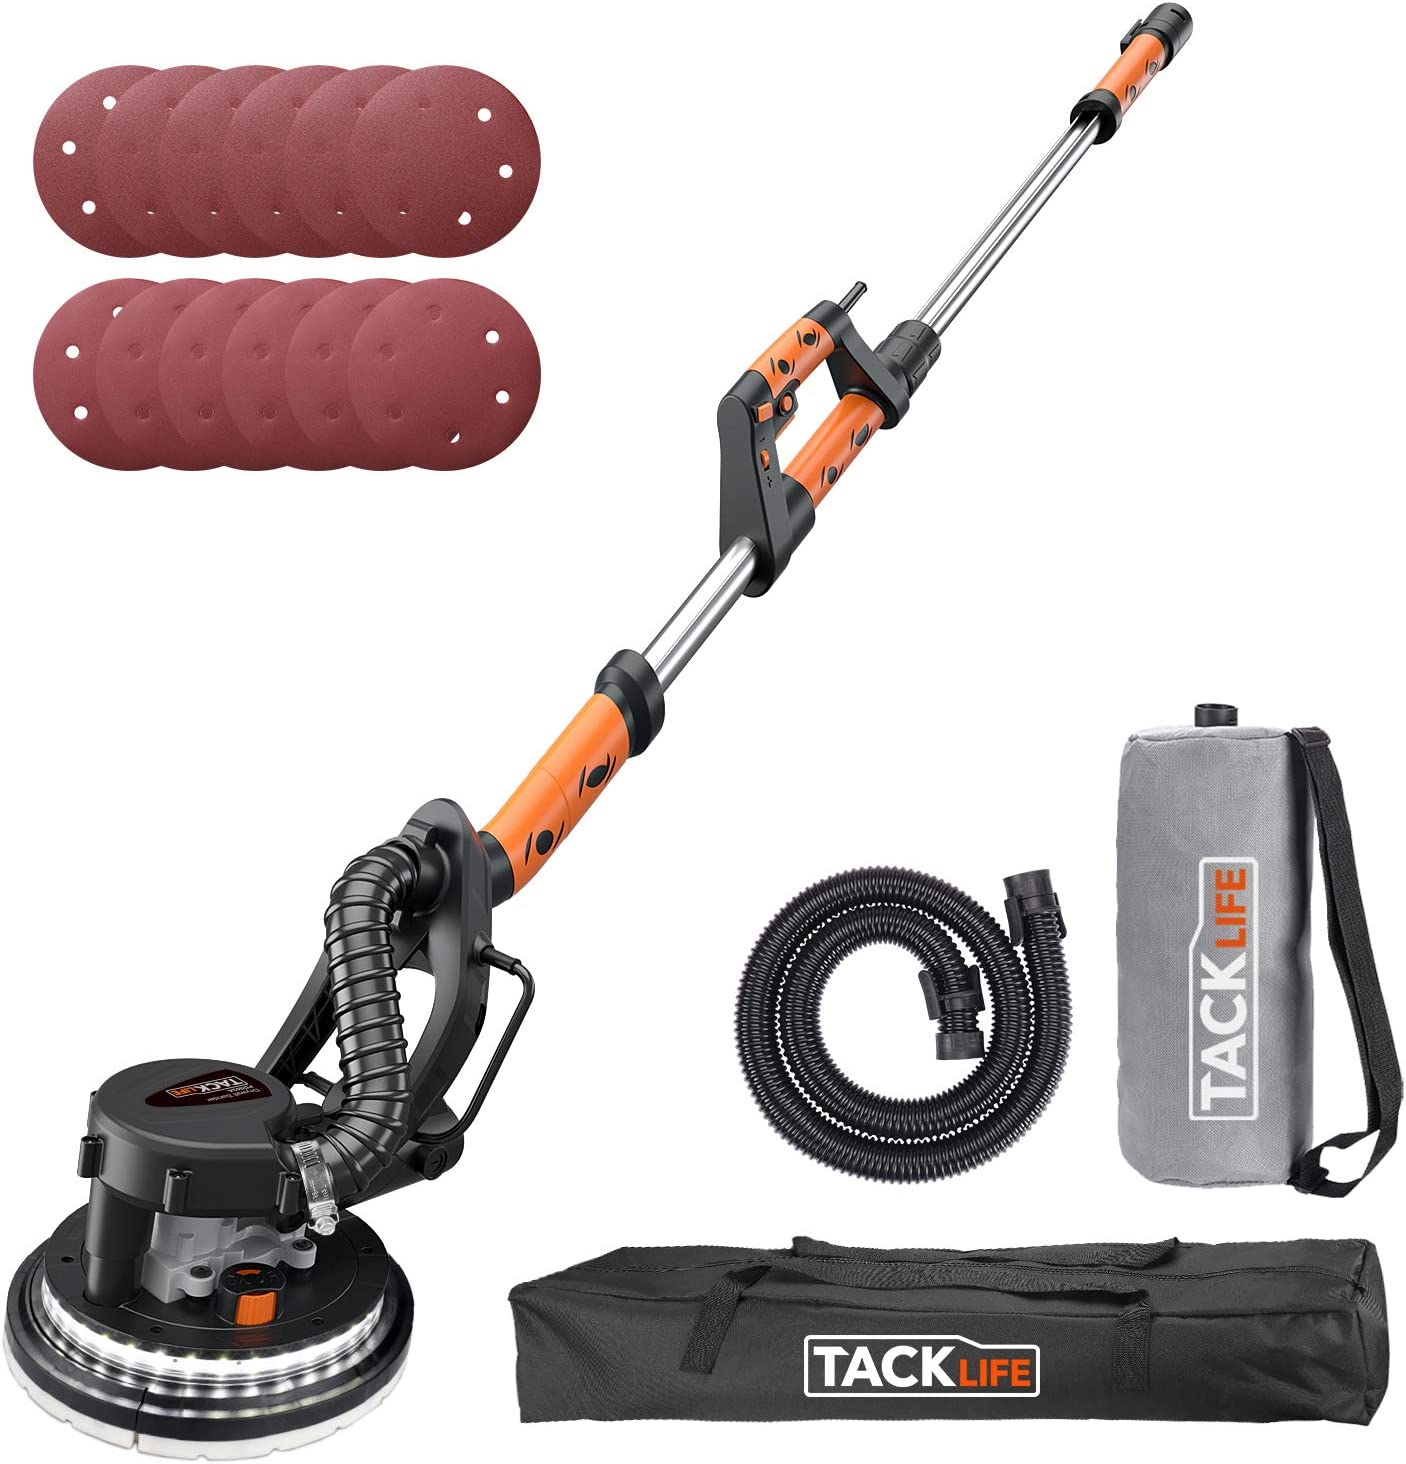 5. Tacklife PDS03A Drywall Sander